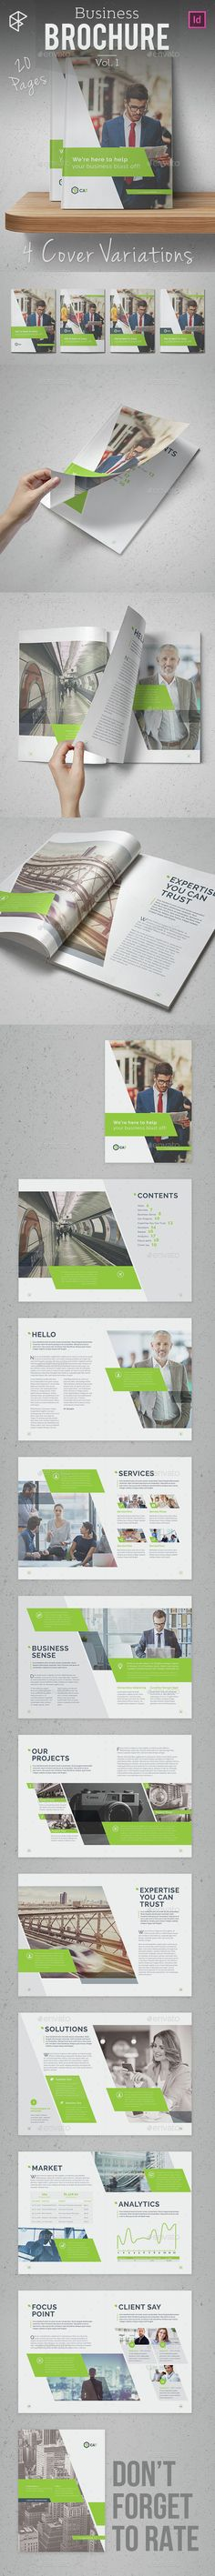 20 Pages Business Brochure Template InDesign INDD. Download here: http://graphicriver.net/item/business-brochure-vol-1/15373578?ref=ksioks